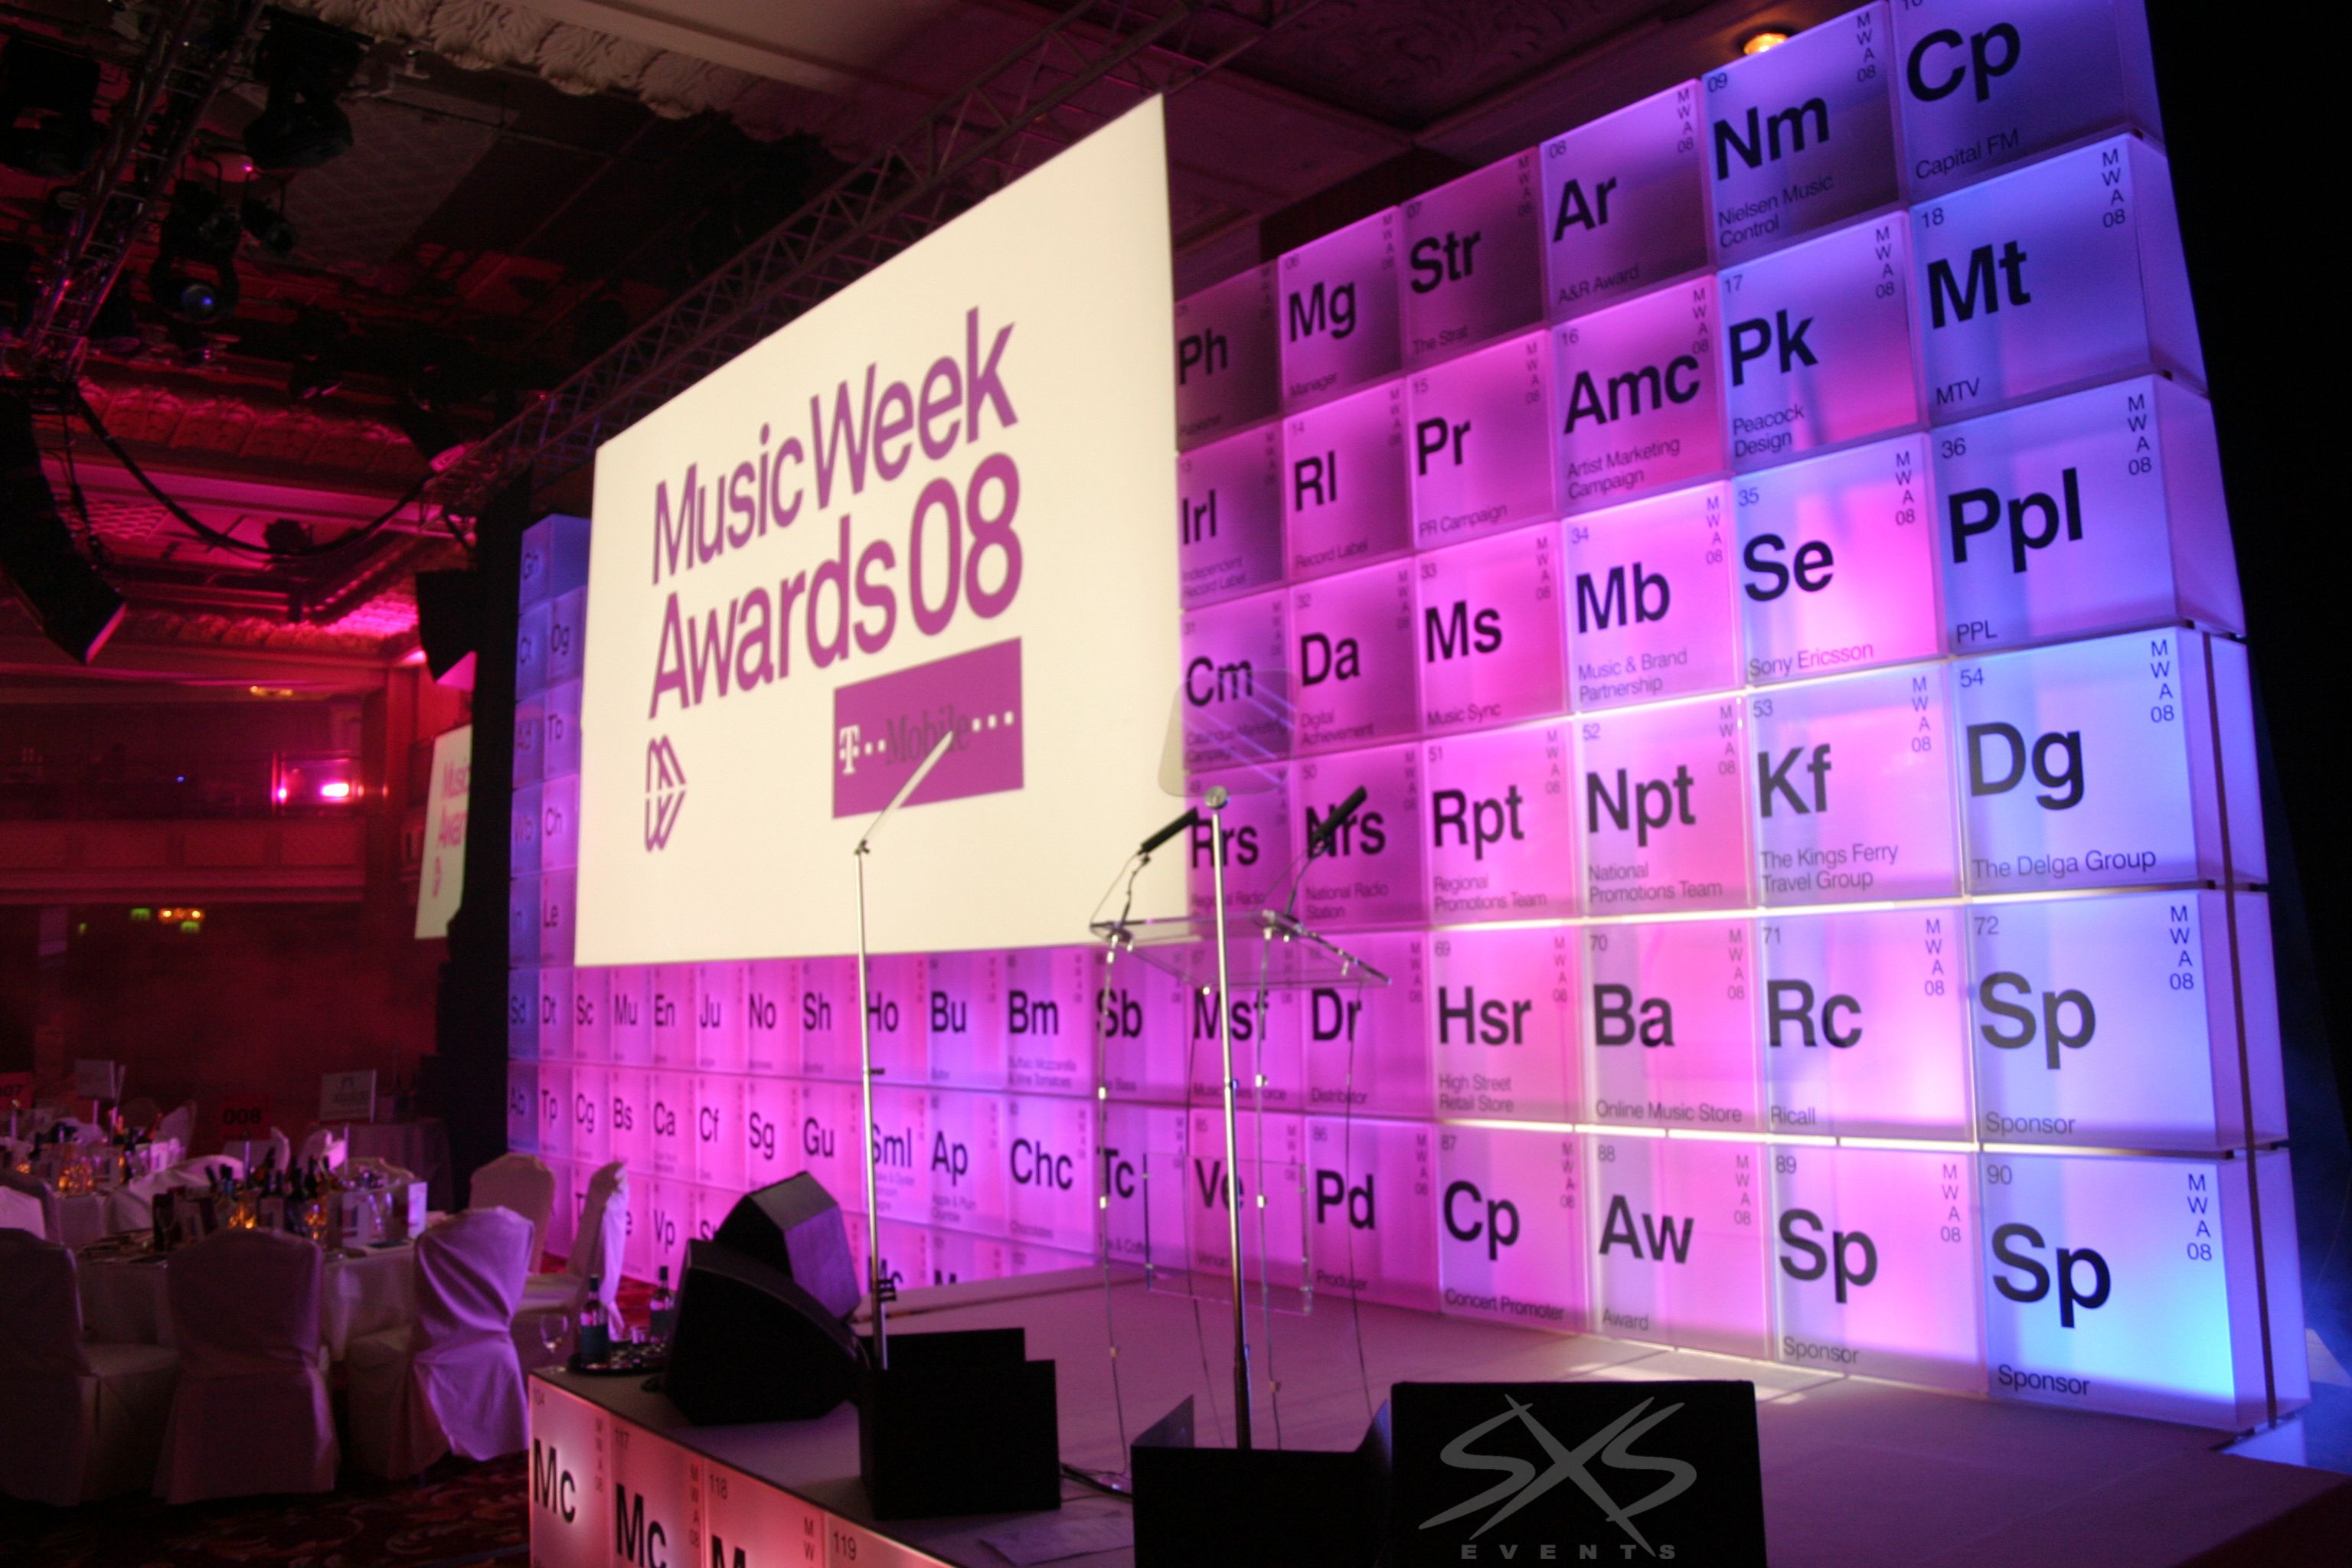 Custom glowing cube set for Music week awards, with perspex lectern and autocue. www.sxsevents.co.uk